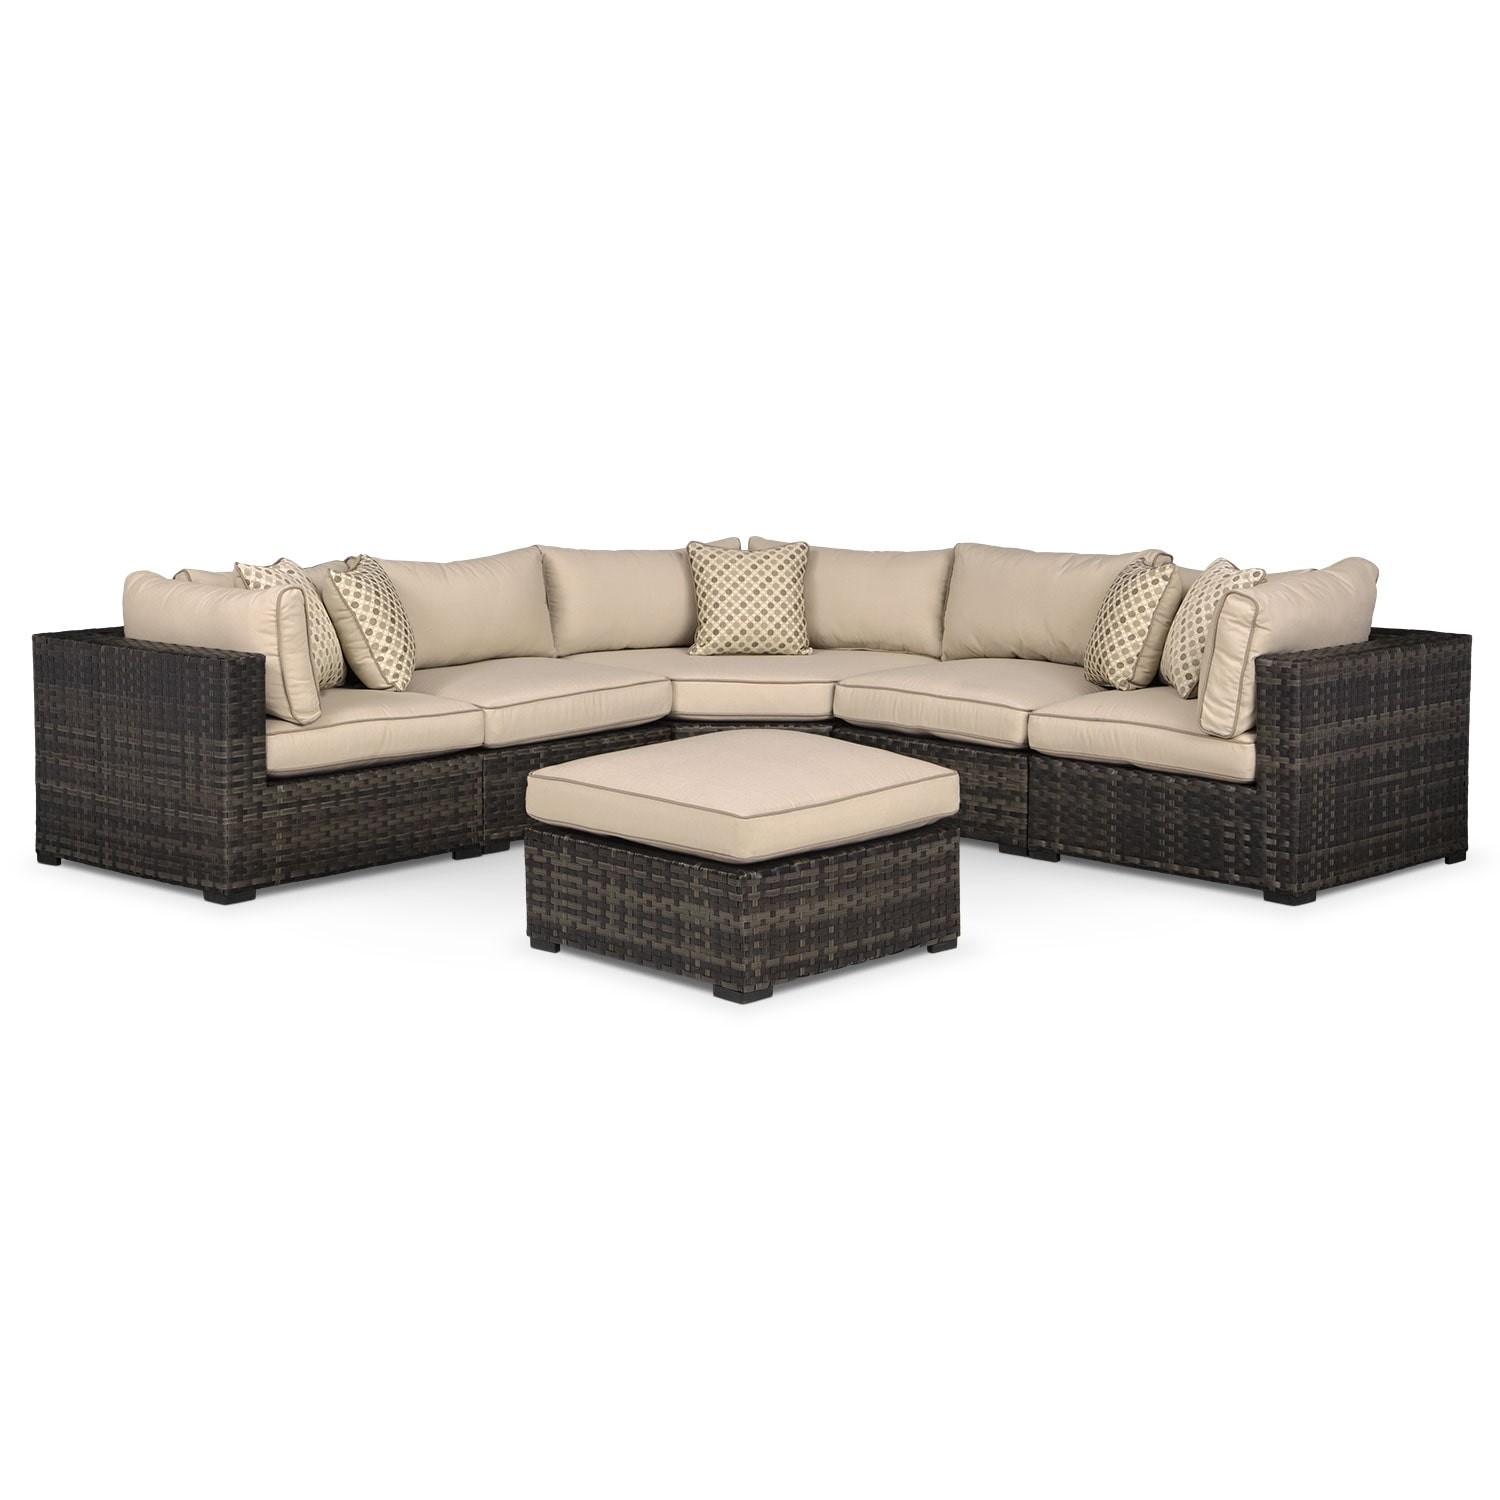 Regatta 5-Piece Outdoor Sectional with Wedge and Ottoman - Brown